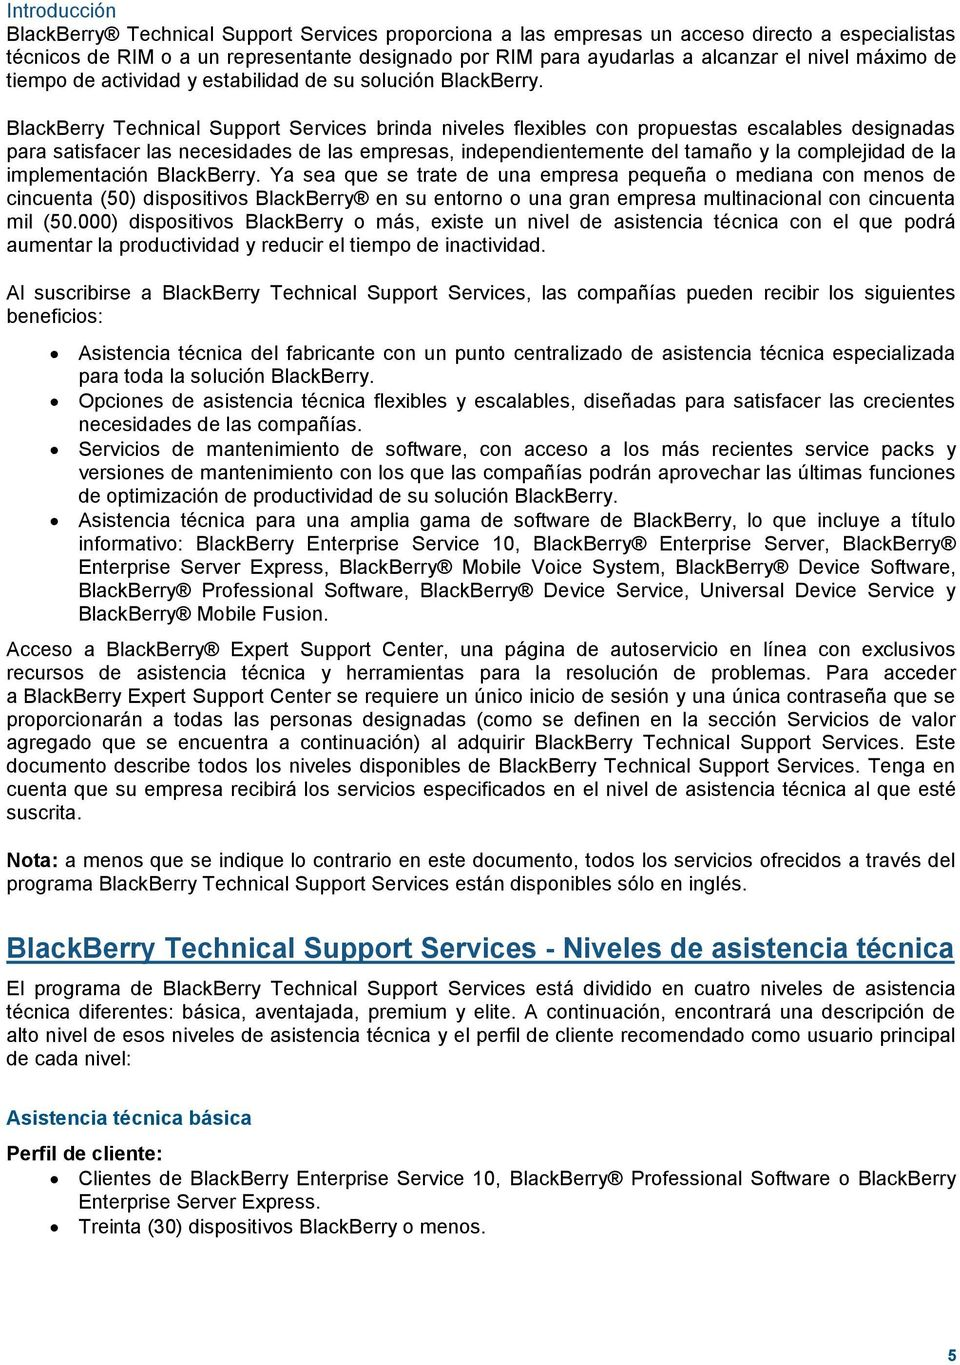 BlackBerry Technical Support Services brinda niveles flexibles con propuestas escalables designadas para satisfacer las necesidades de las empresas, independientemente del tamaño y la complejidad de